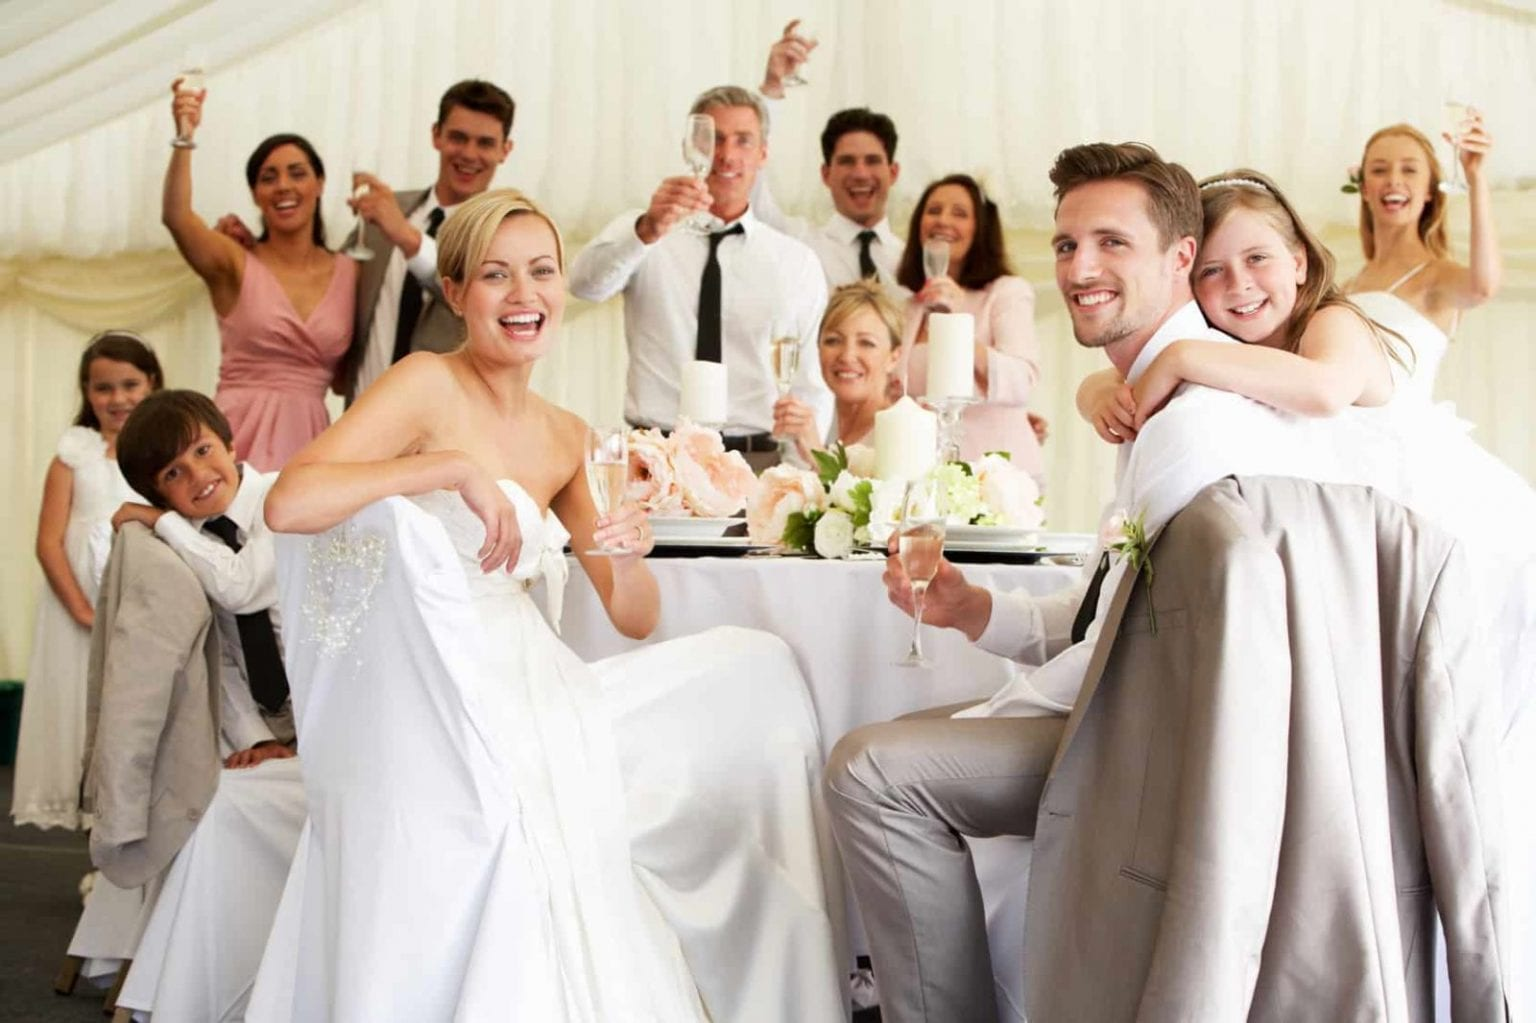 How To Pick The Perfect Wedding Band To Perform At Your Reception